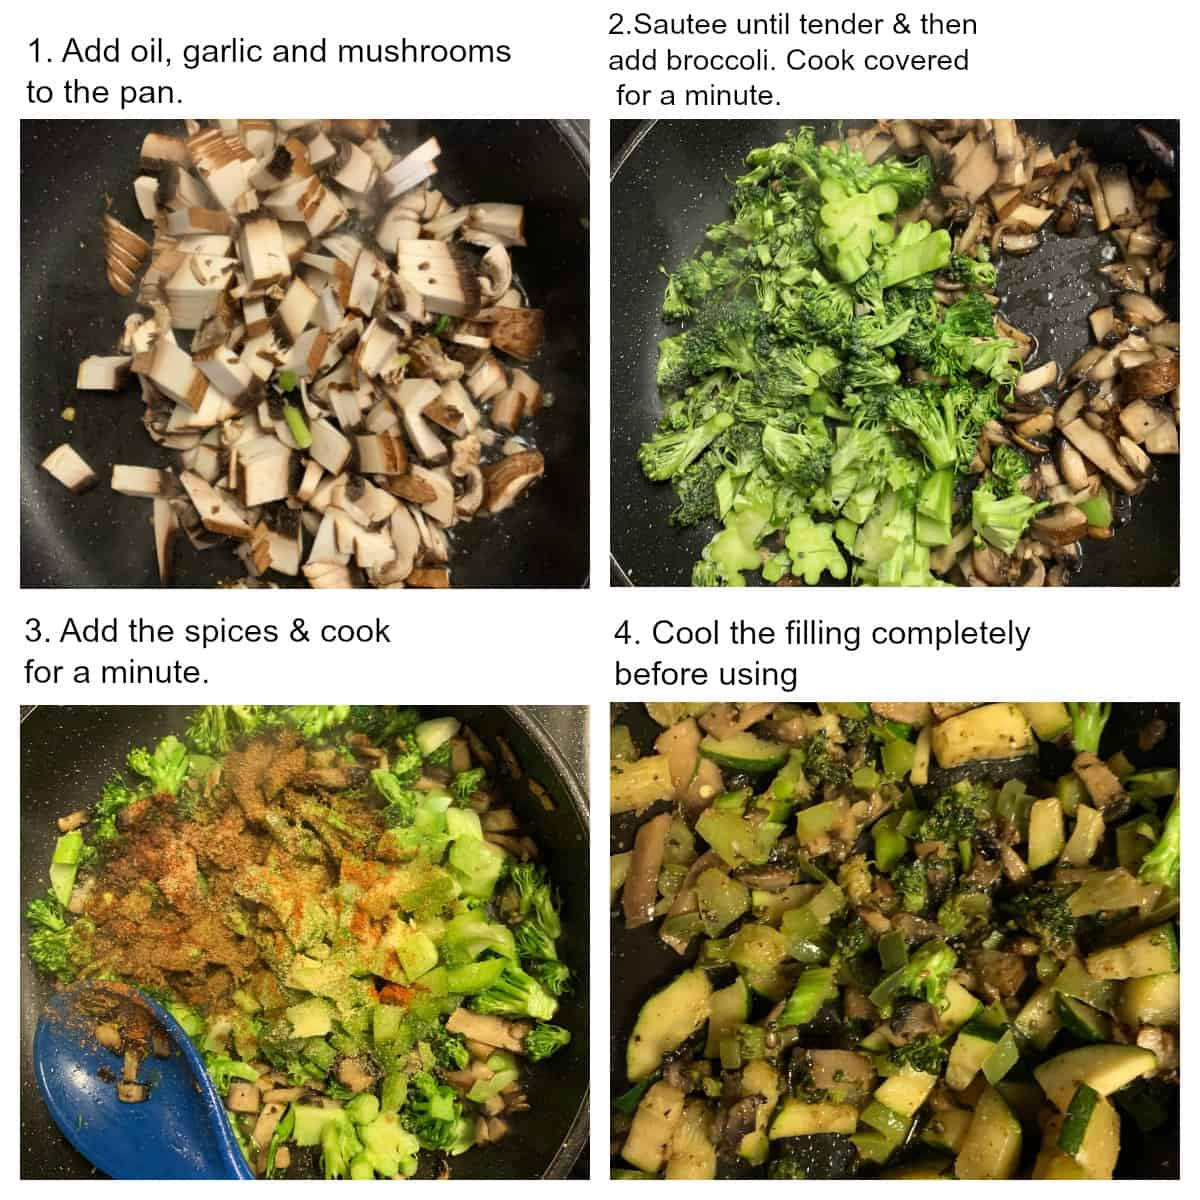 Cooking mushrooms, broccoli and zucchini in a pan